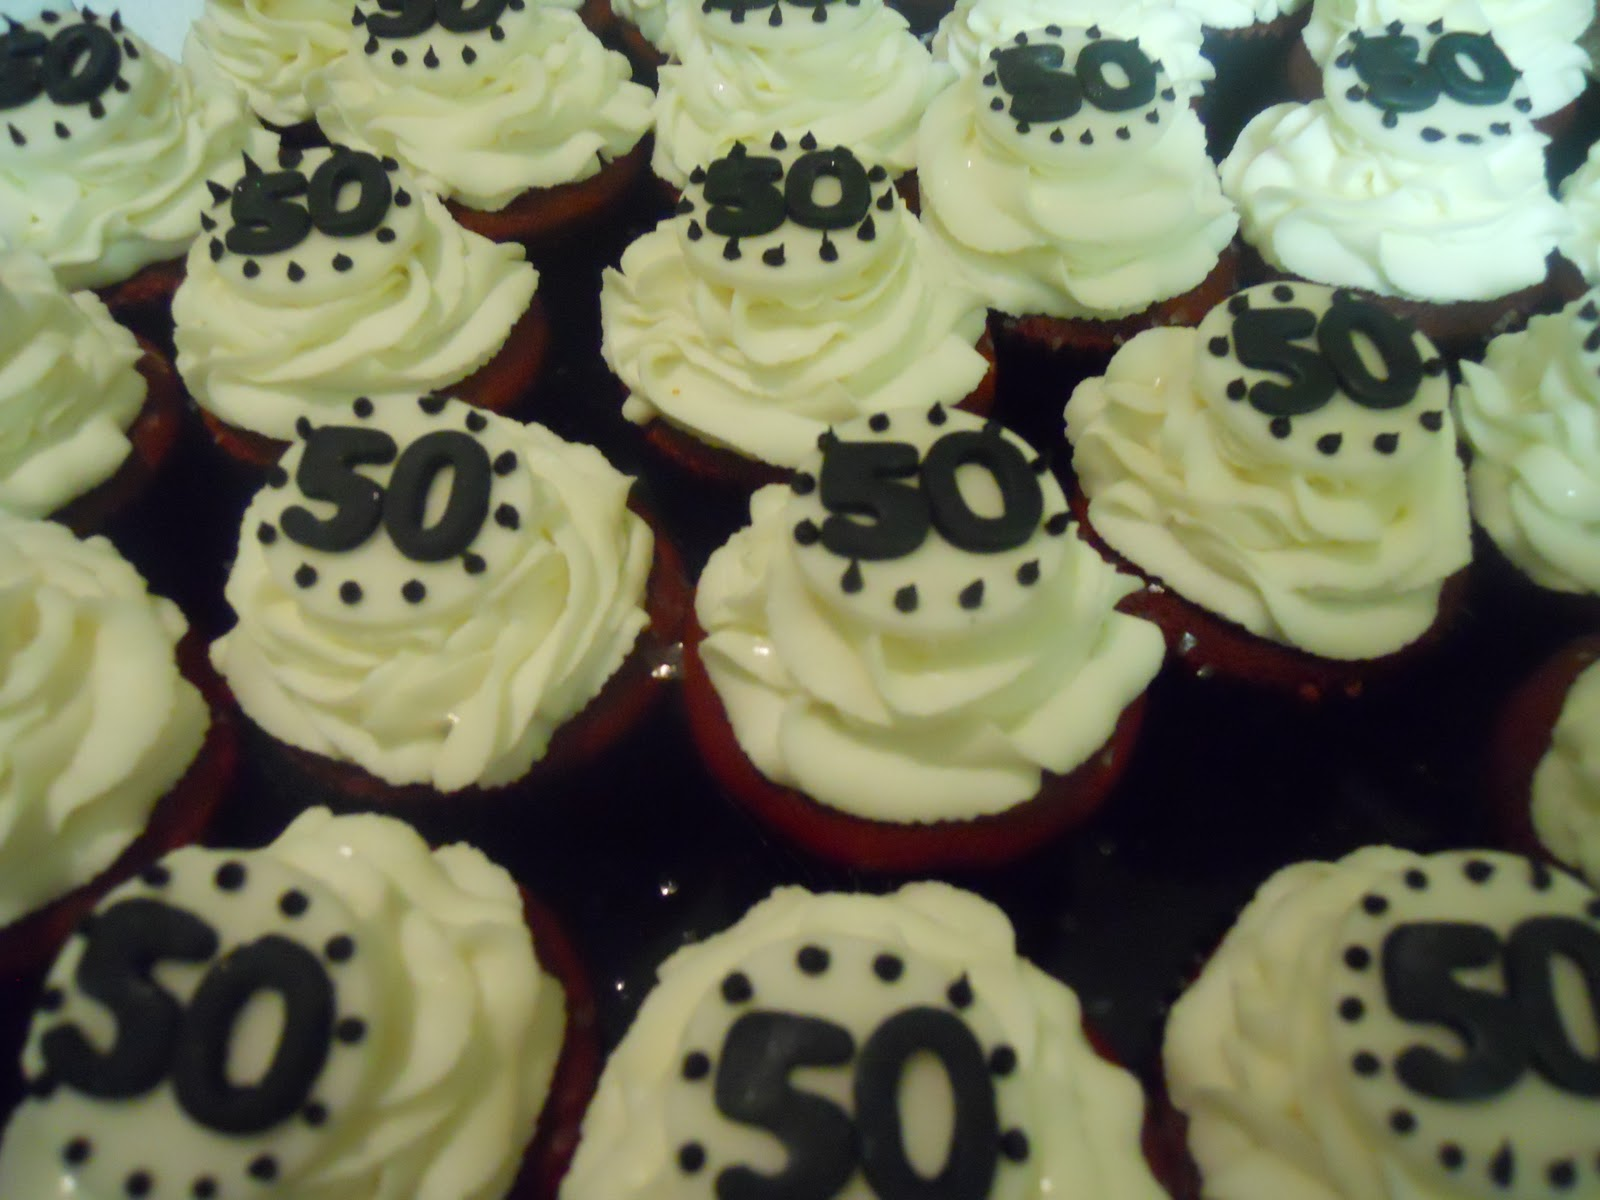 Cupcake Decorations For 50th Birthday